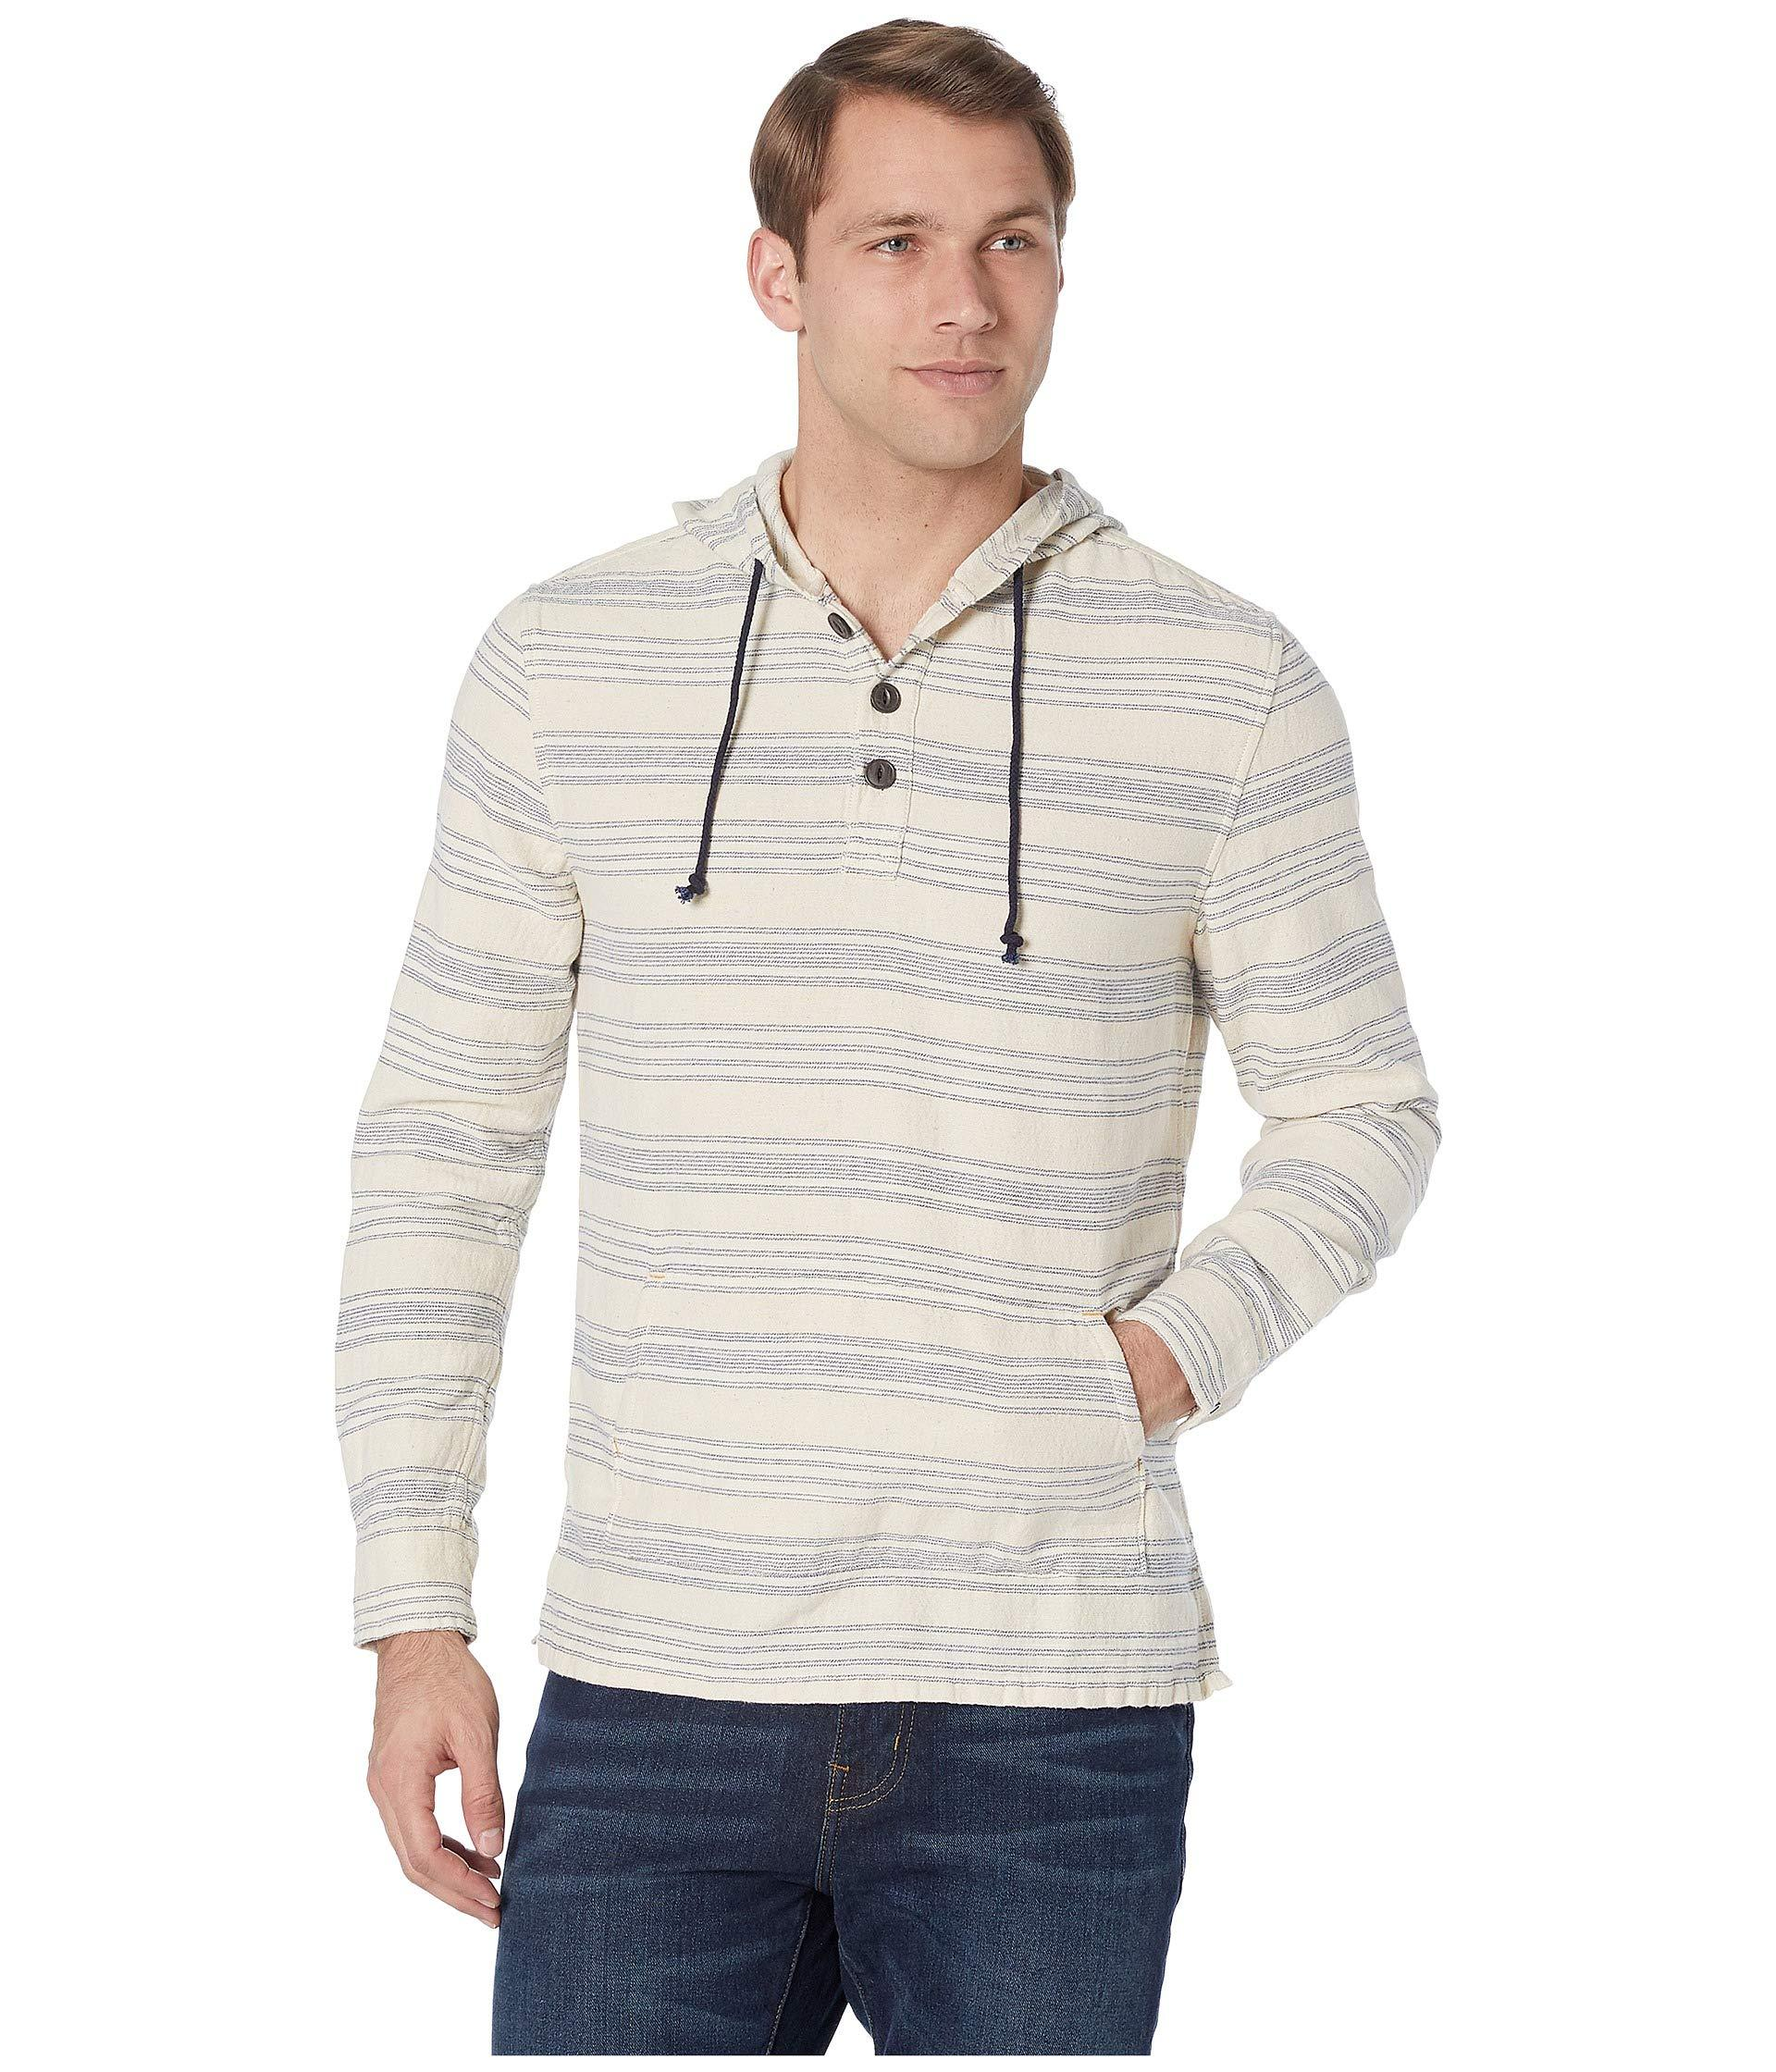 Lyst - True Grit Pacific Hoodie Poncho (natural/blue) Men's